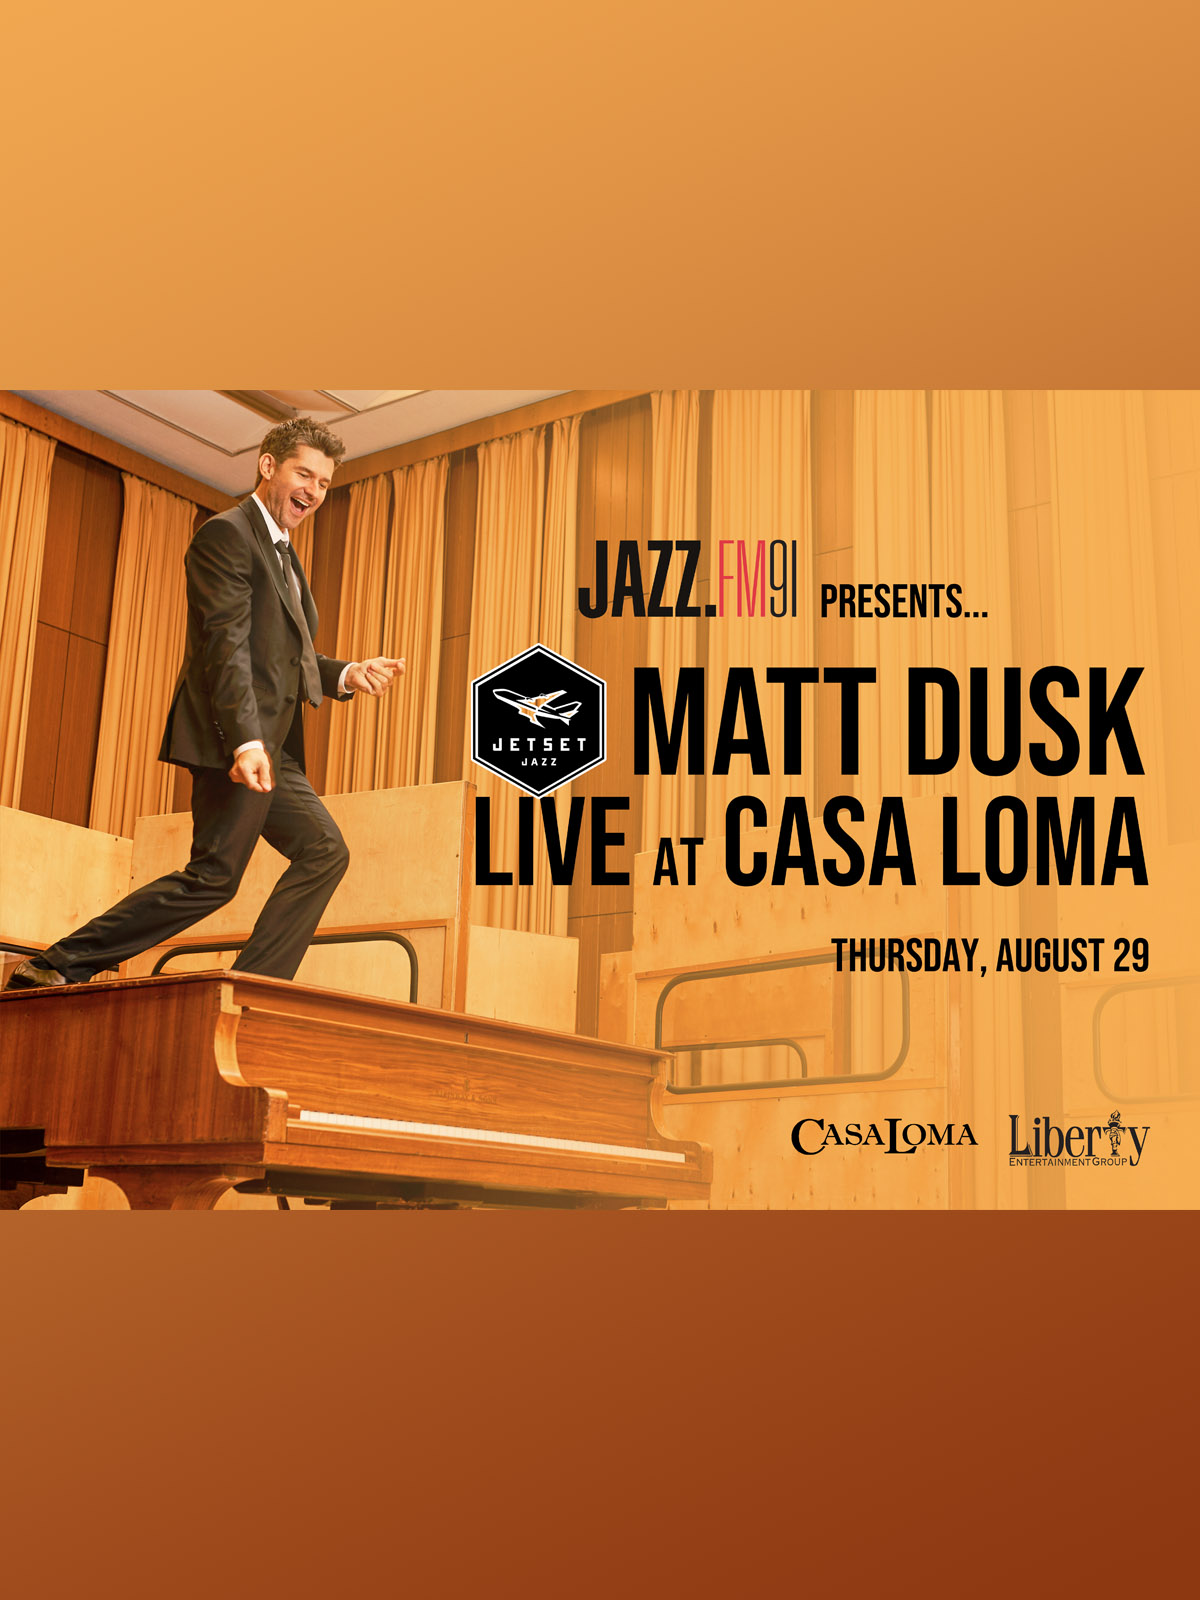 JAZZ.FM91 Presents… Matt Dusk JetSetJazz Live at Casa Loma